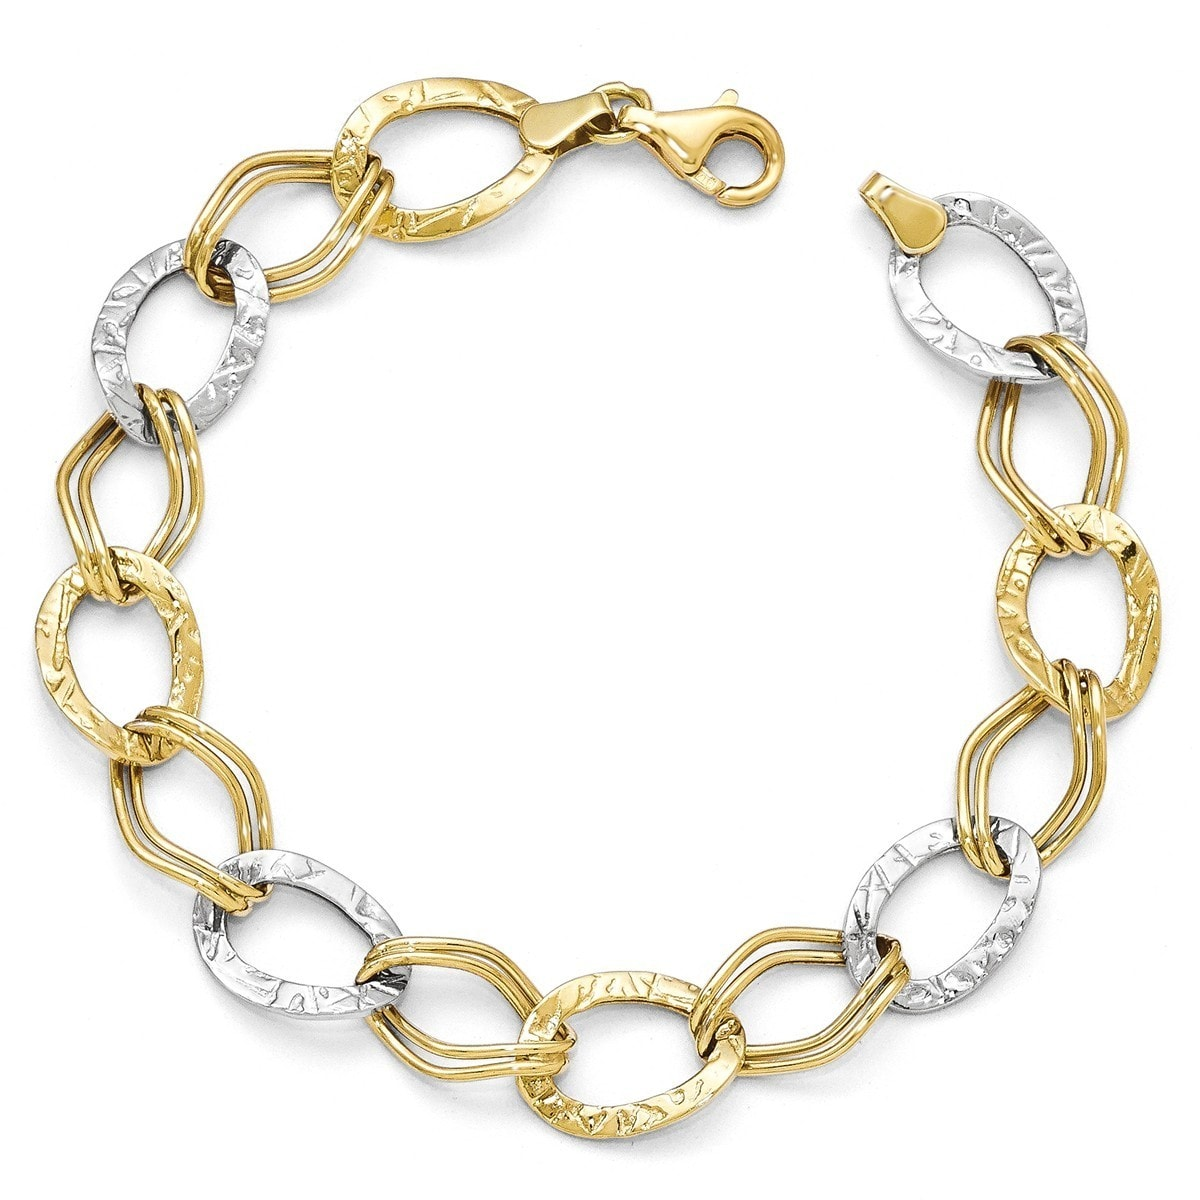 2019 New Style 14k Two Gold Abstract Fancy Link Design Ankle Bracelet 2.8 Grams Anklet Clearance Price Fine Jewelry